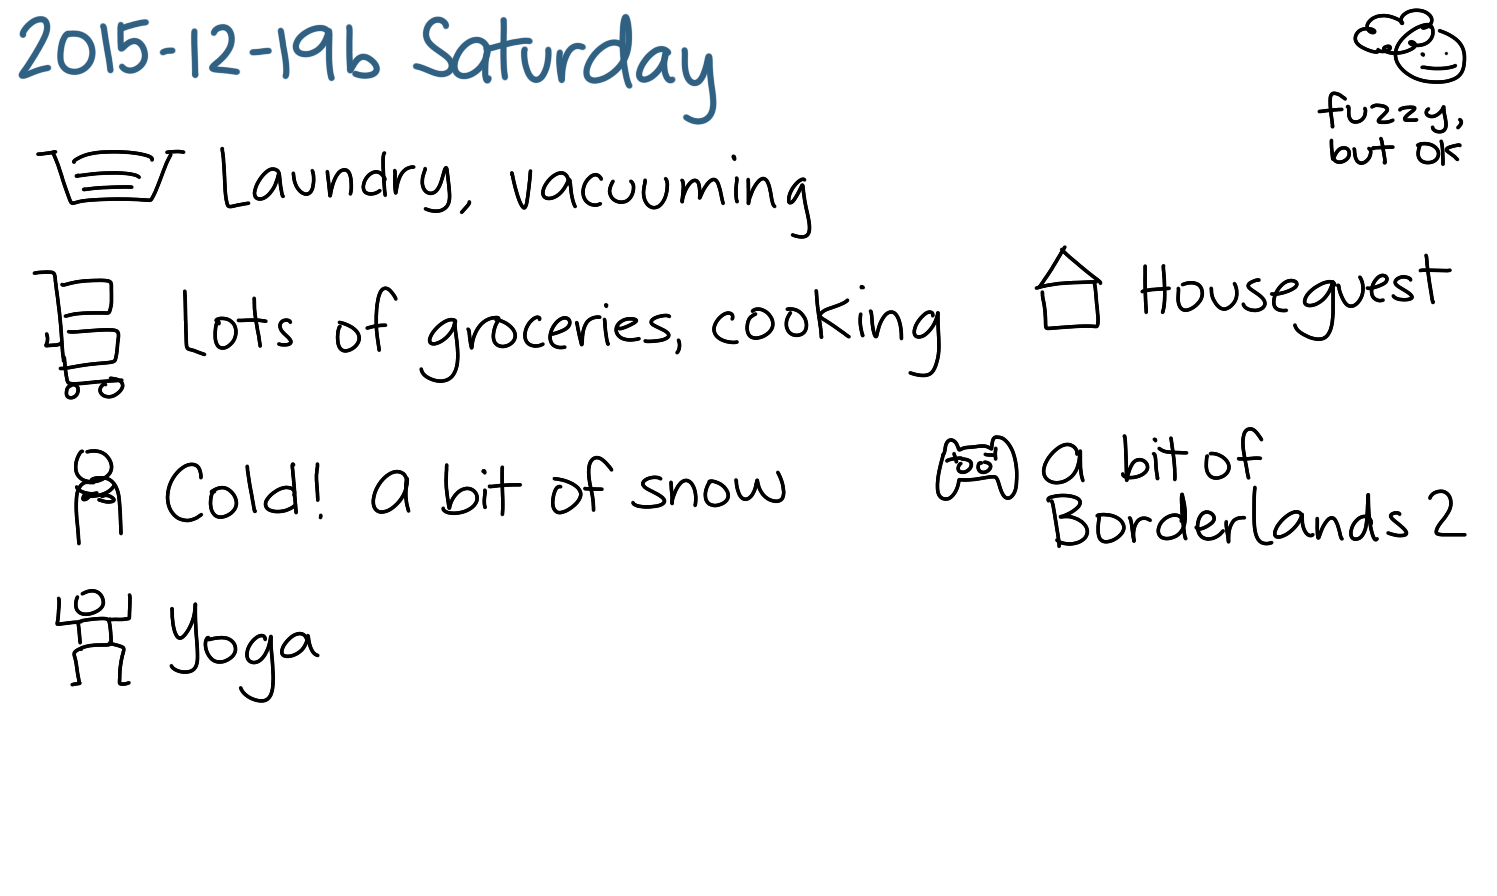 2015-12-19b Saturday -- index card #journal.png